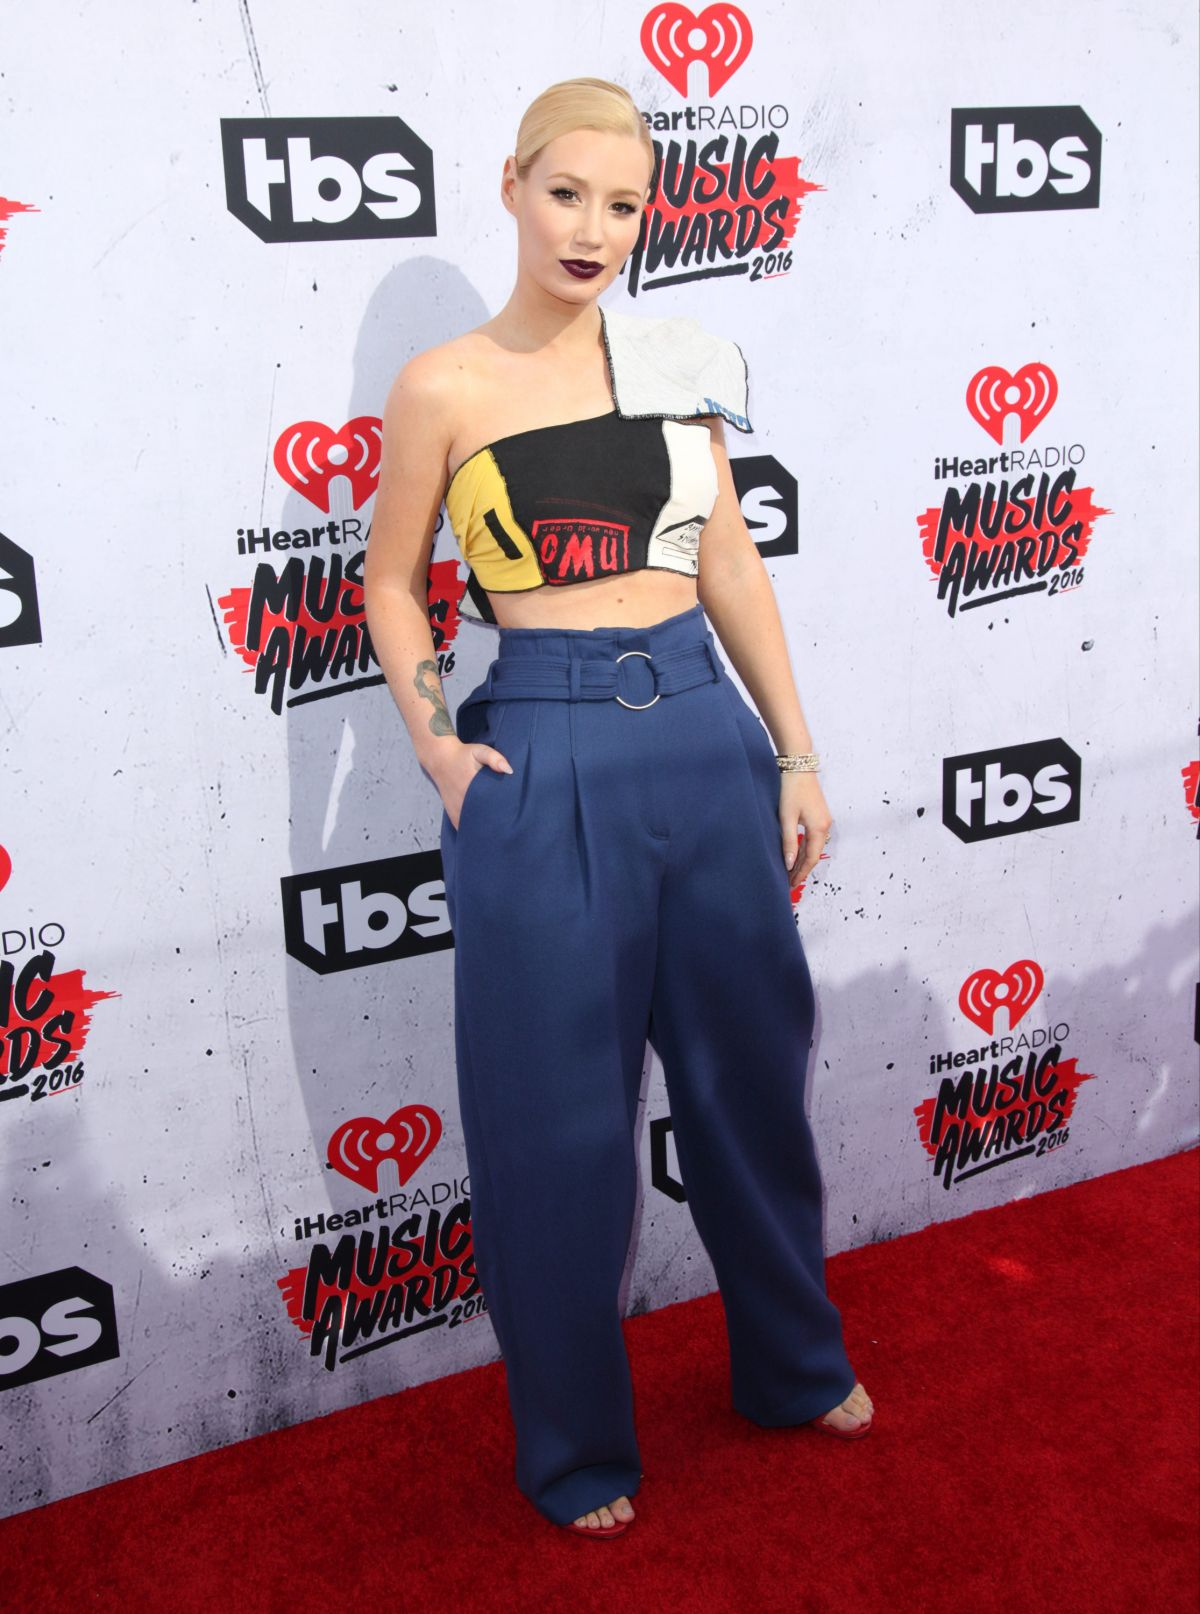 IGGY AZALEA at iHeartRadio Music Awards in Los Angeles 04/03/2016